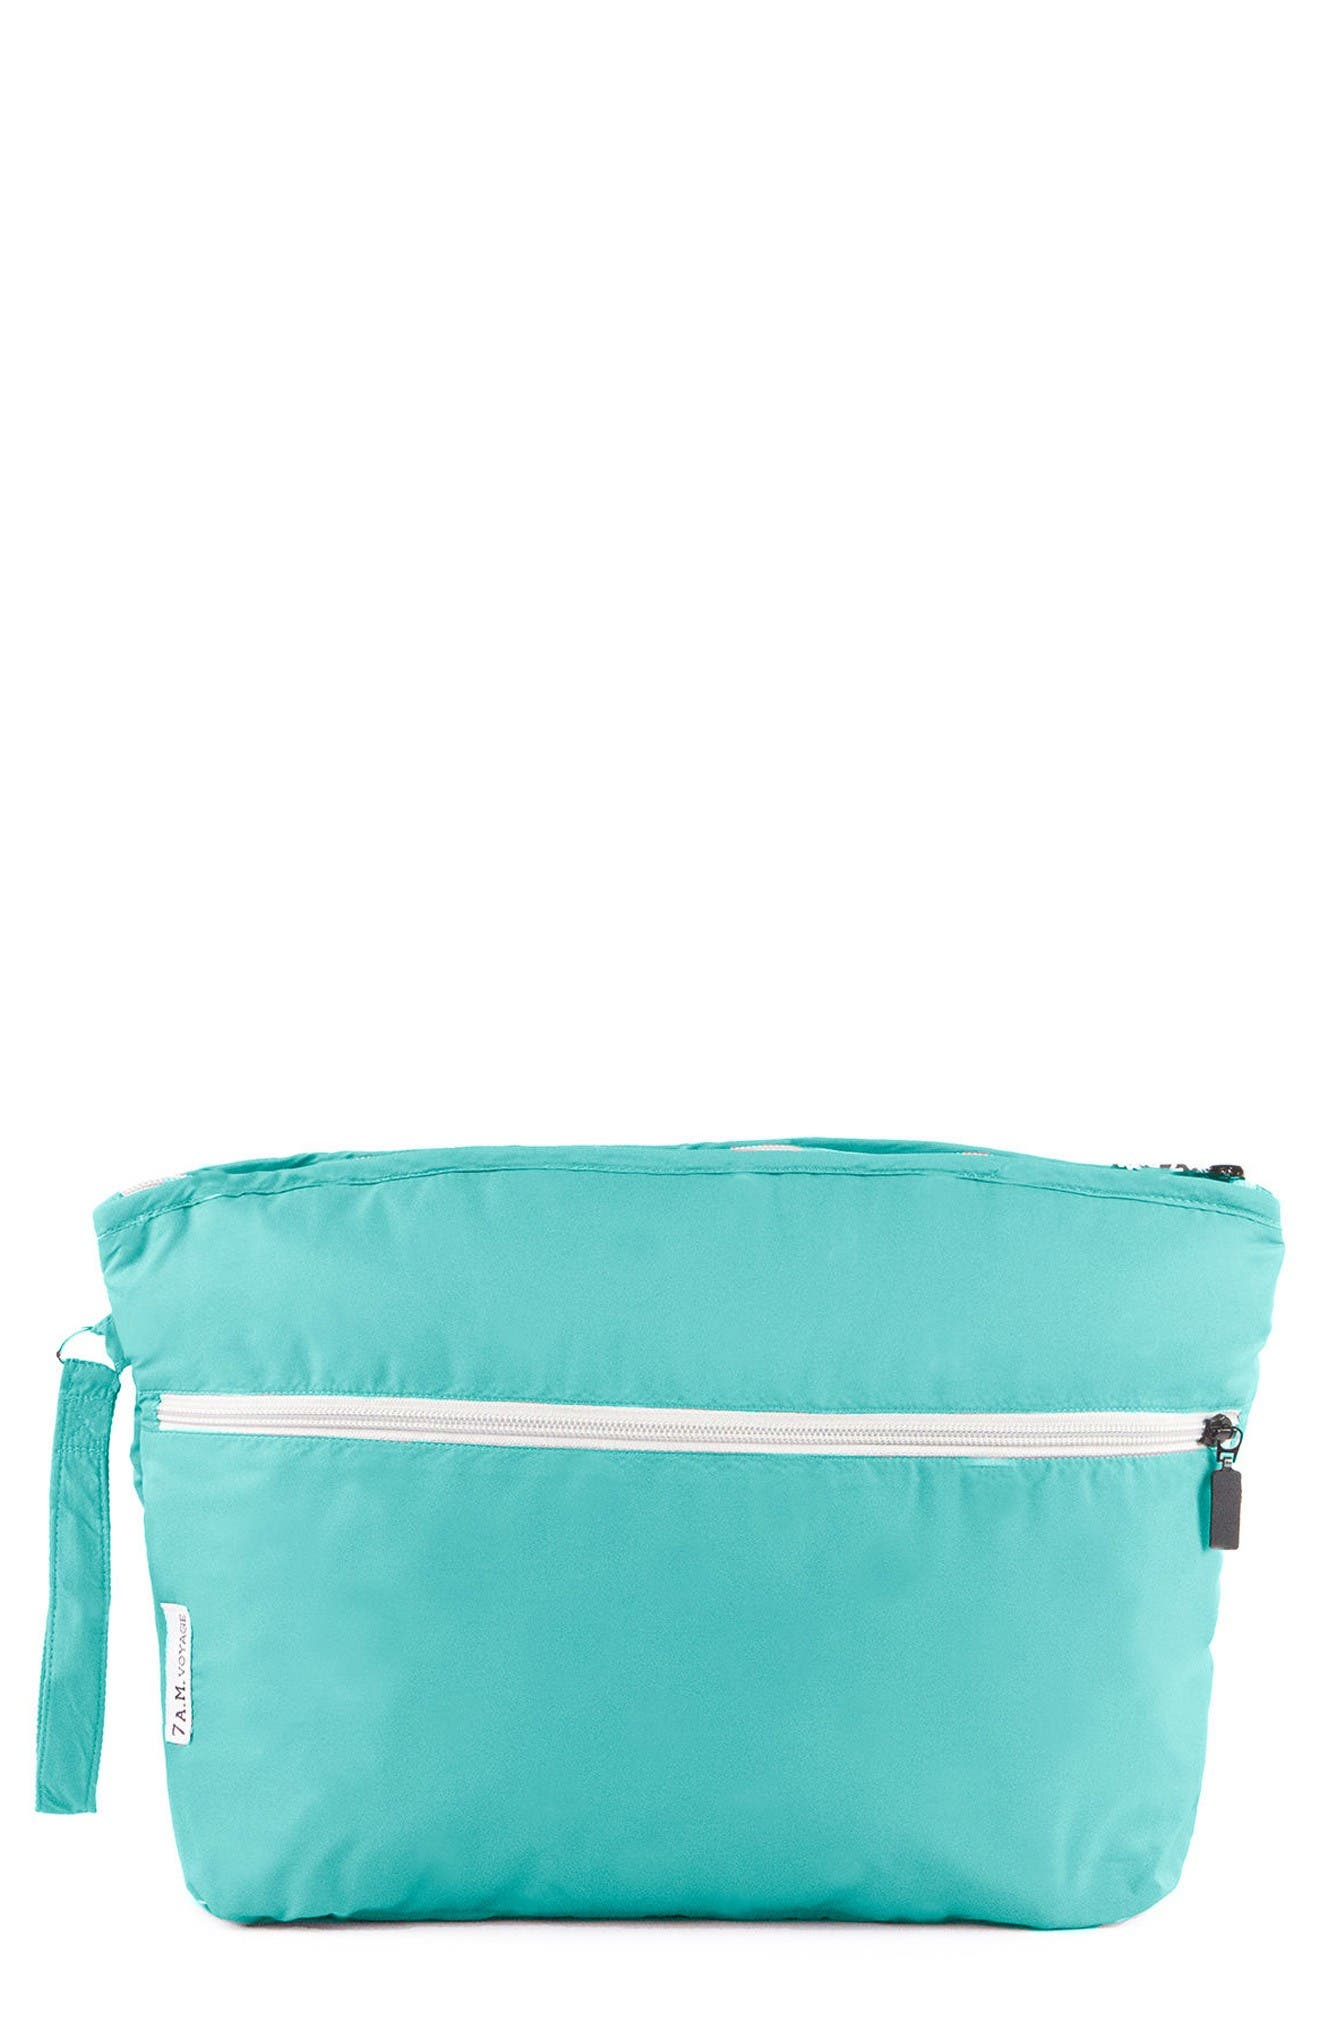 Alternate Image 1 Selected - 7 A.M. Enfant Small Water Repellent Clutch